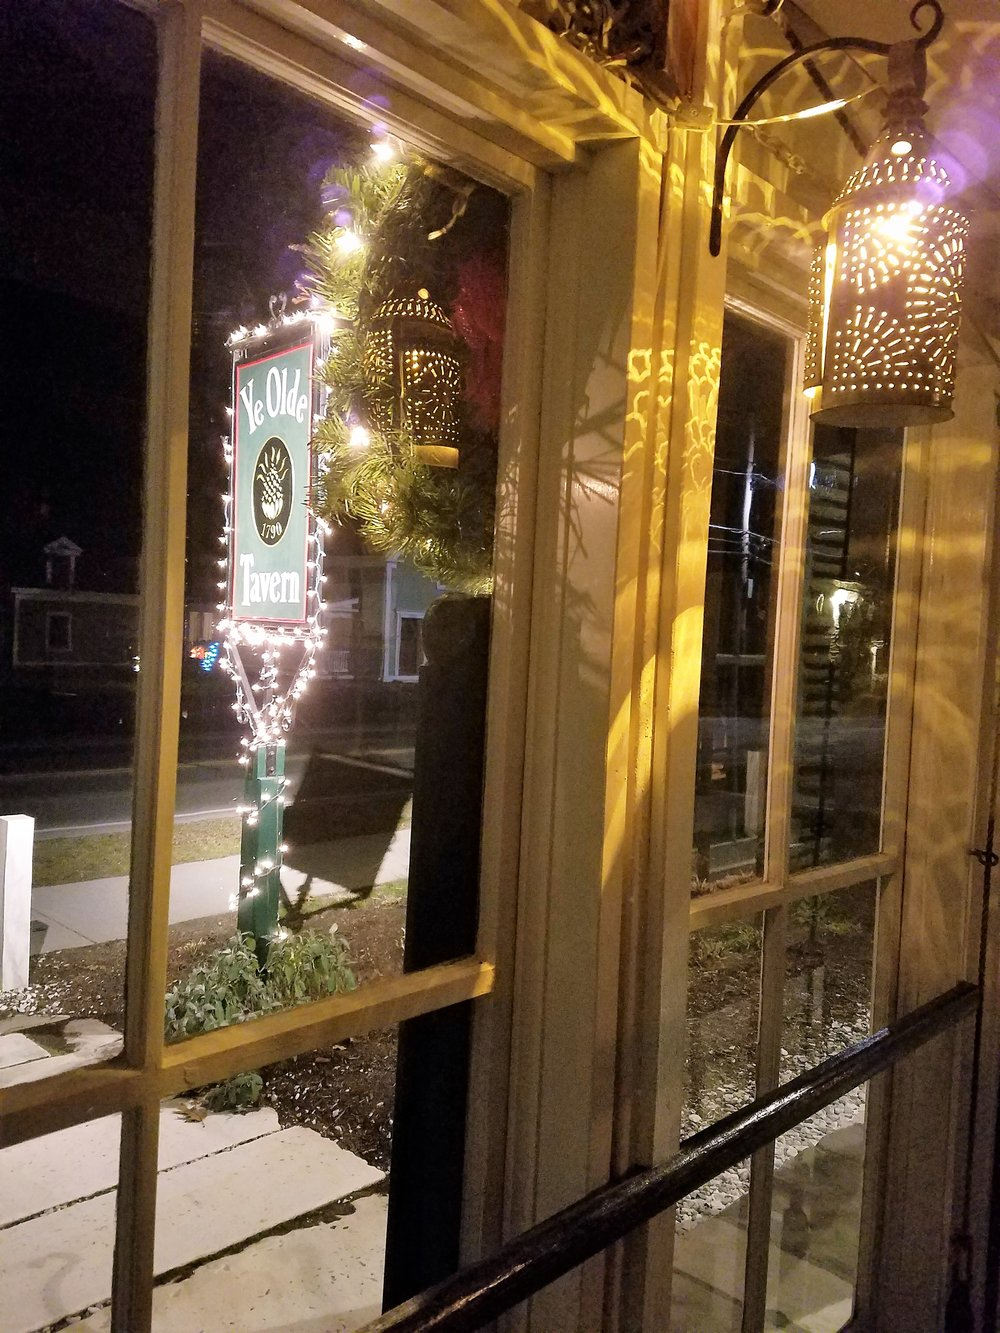 Mudroom to sign with xmas lights 2016.jpg